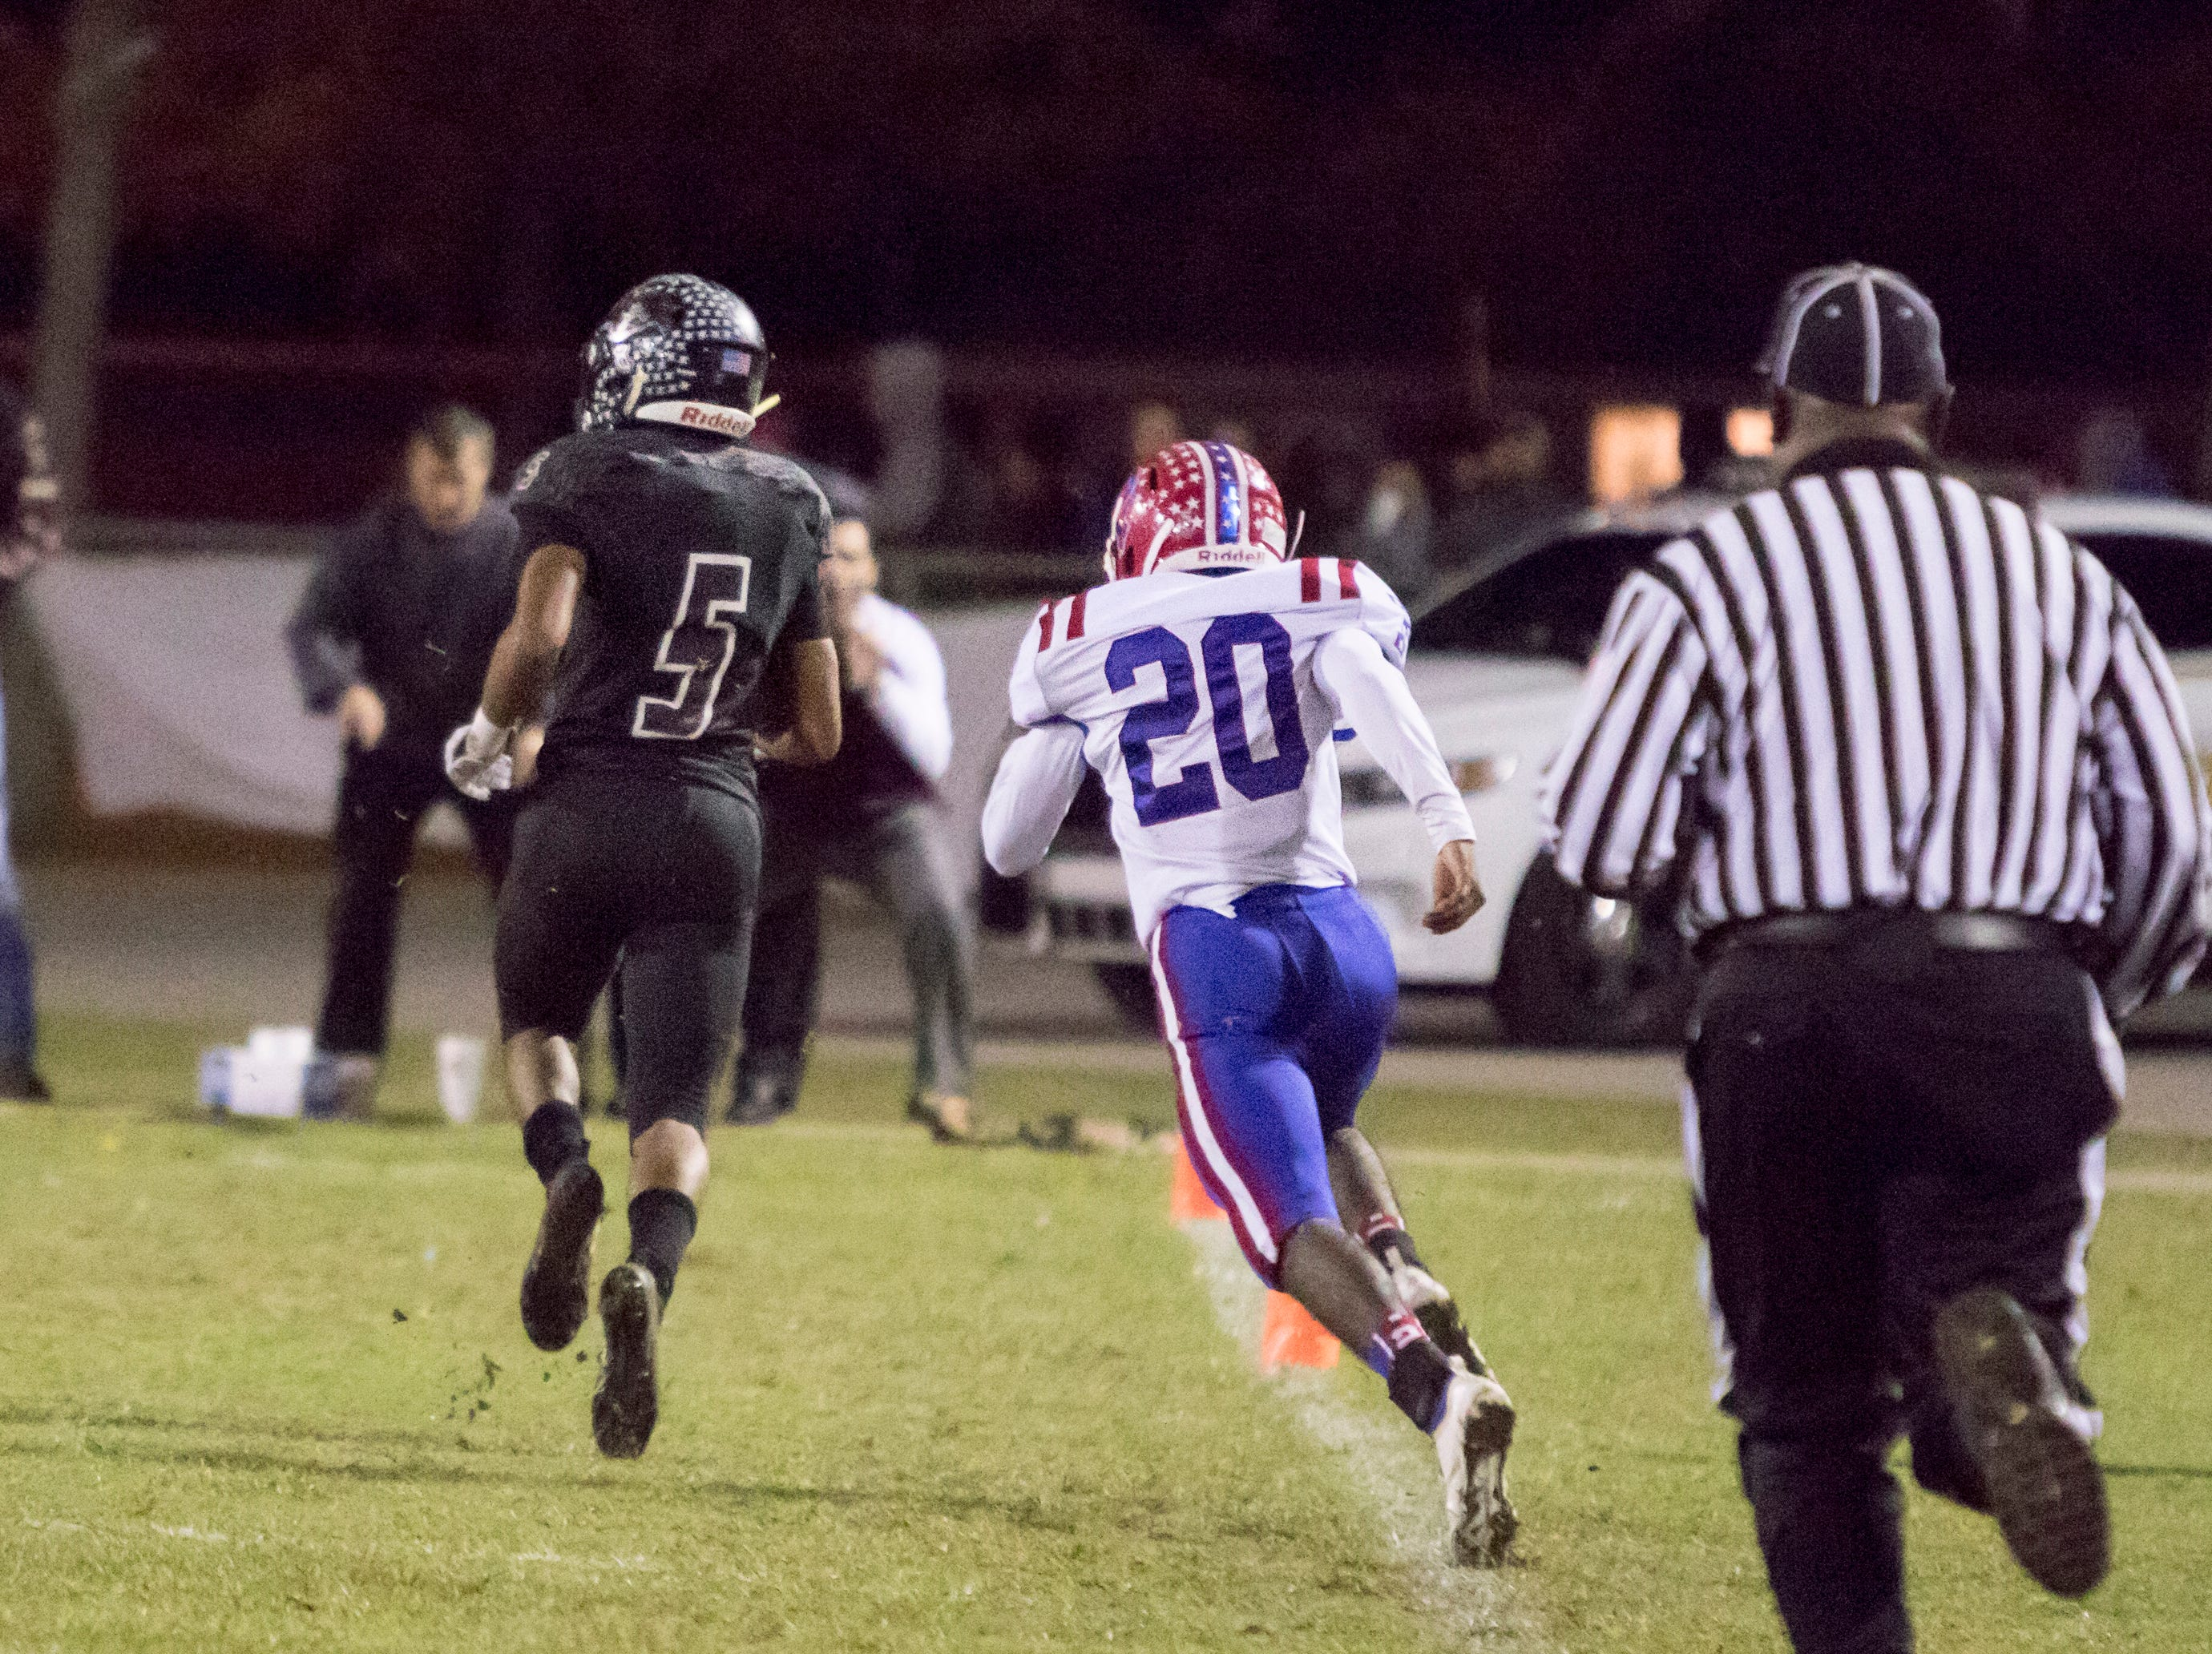 Dante Wright (5) finds open field on his way to a touchdown and a 31-0 lead after the Raiders added the extra point during the Pace vs Navarre playoff football game at Navarre High School on Friday, November 9, 2018.